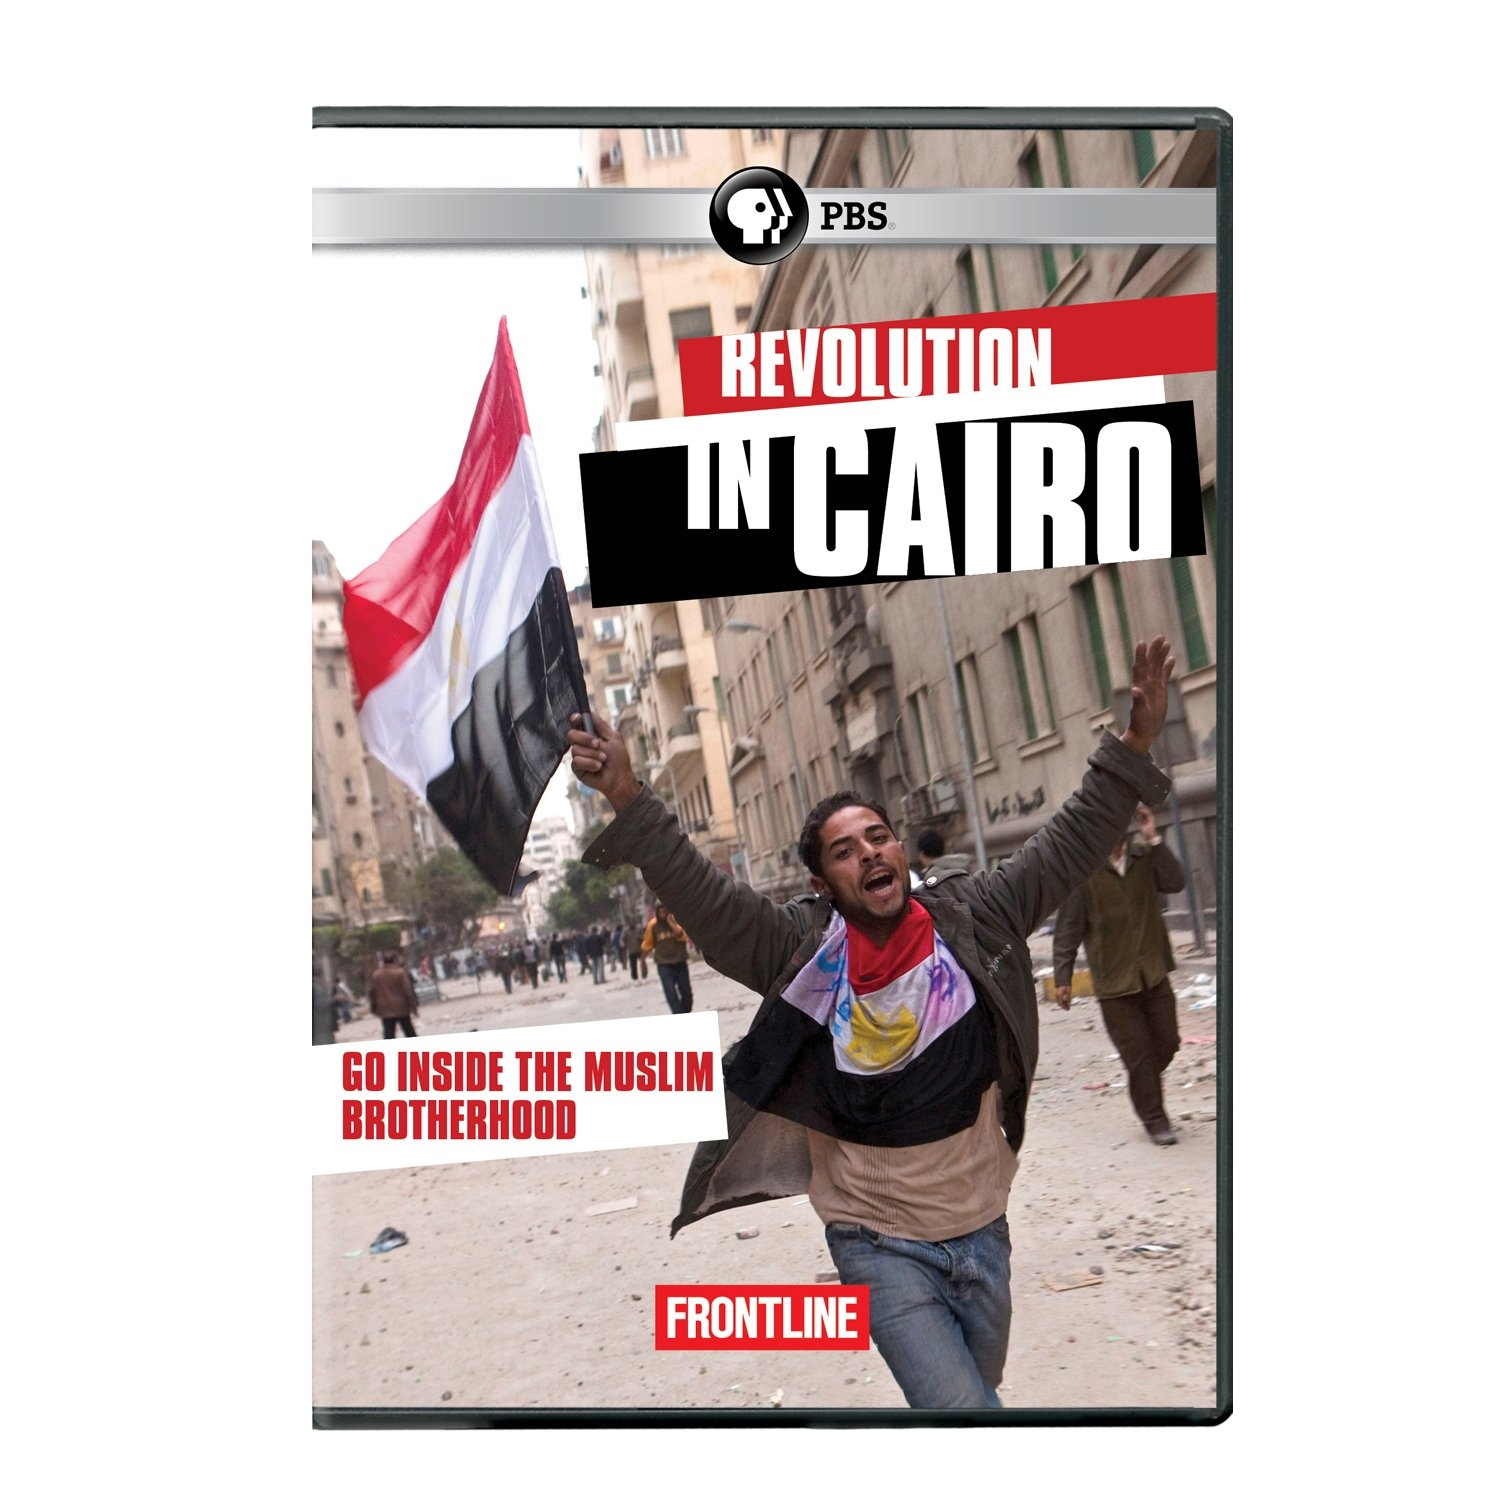 Frontline: Revolution in Cairo